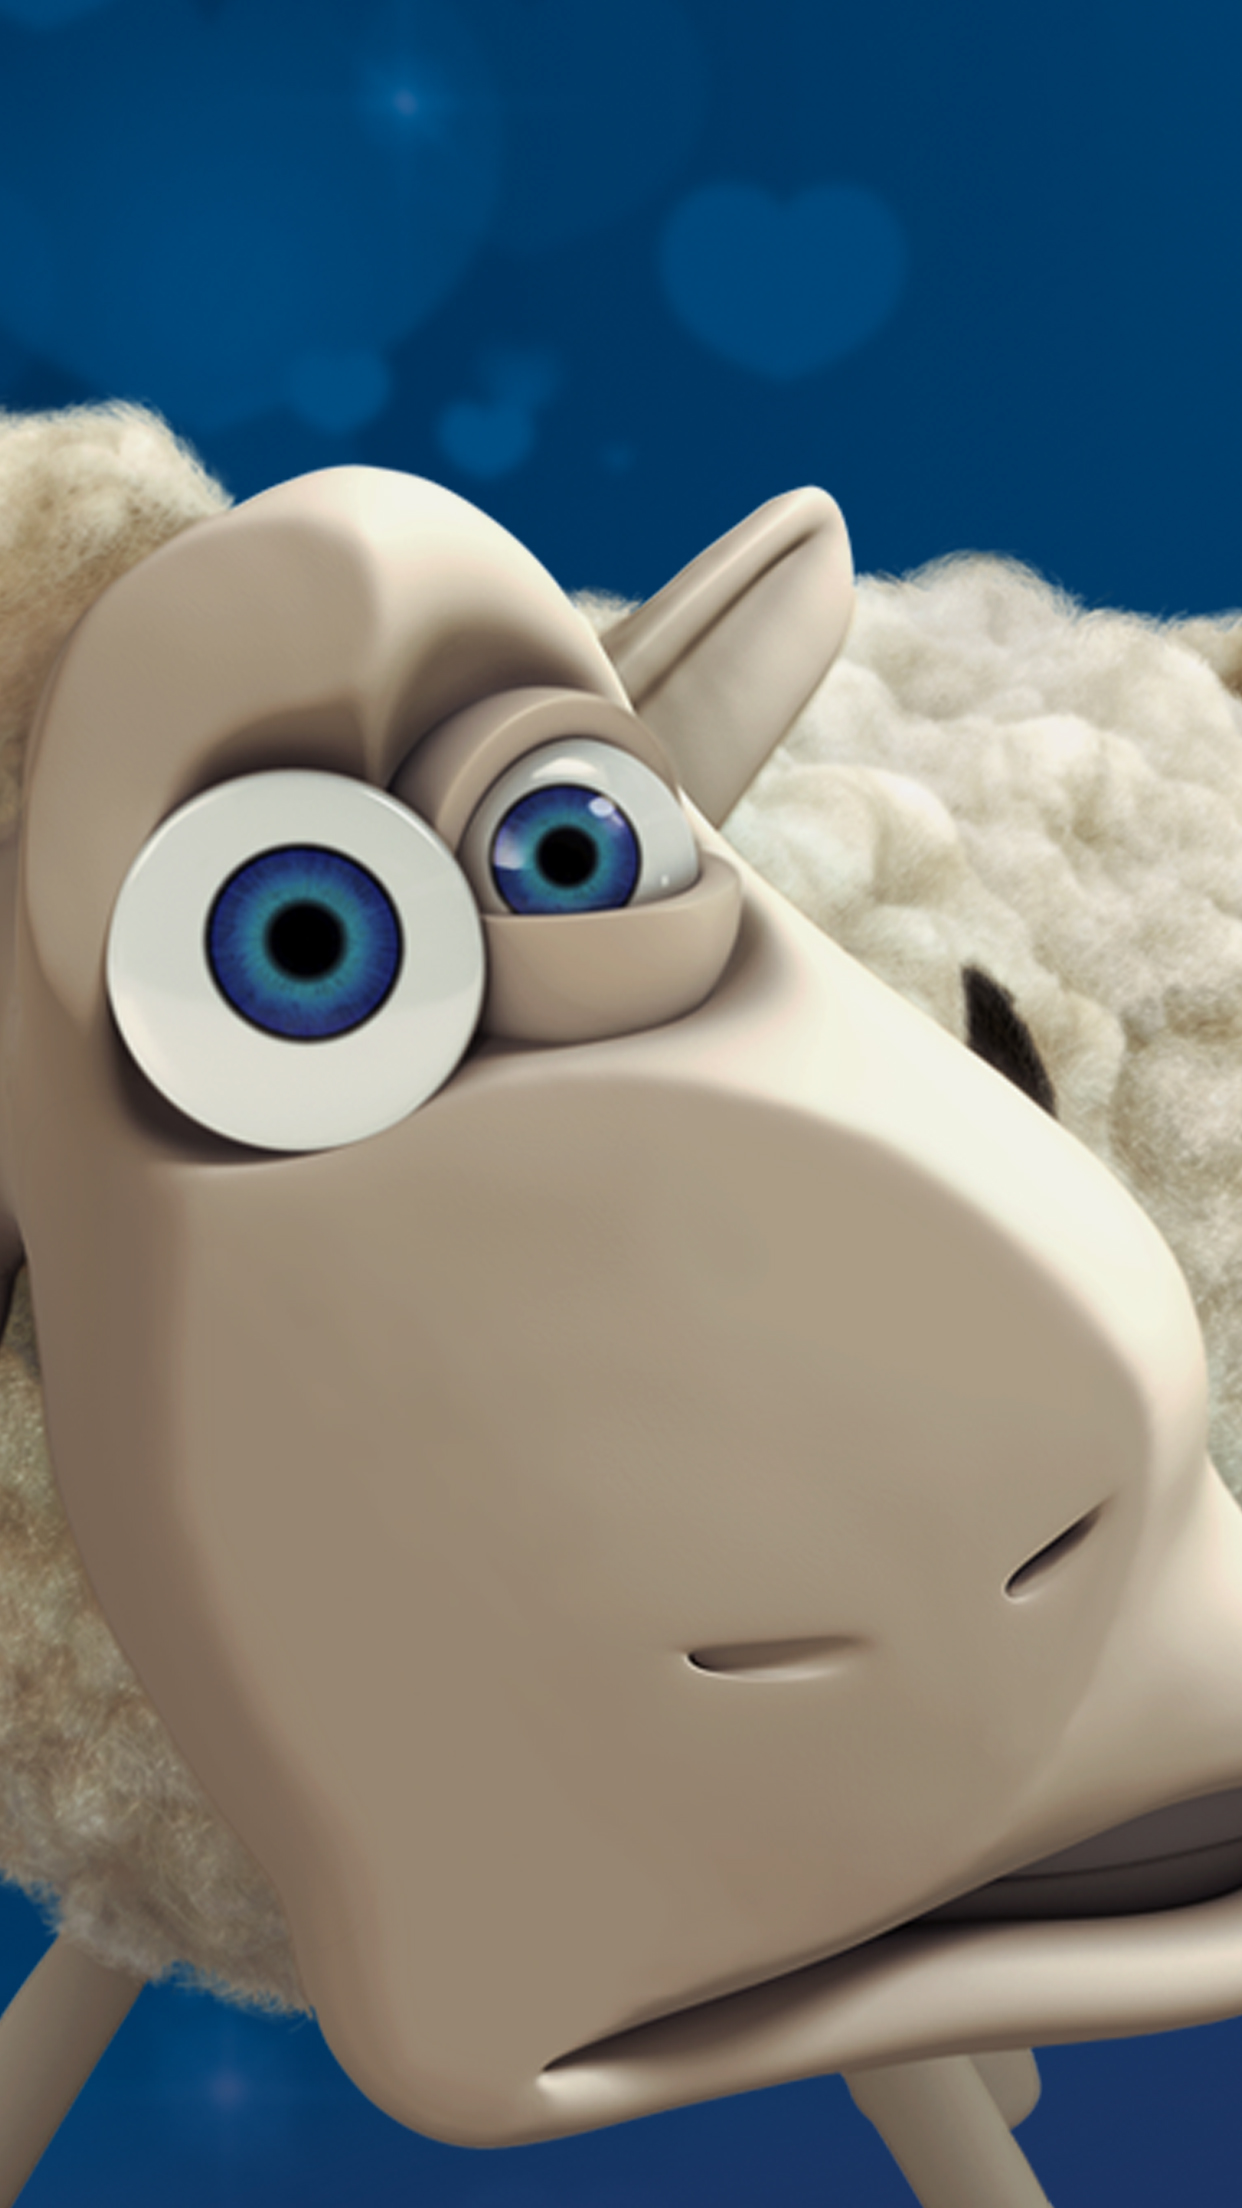 Serta Counting Sheep mobile wallpaper 4